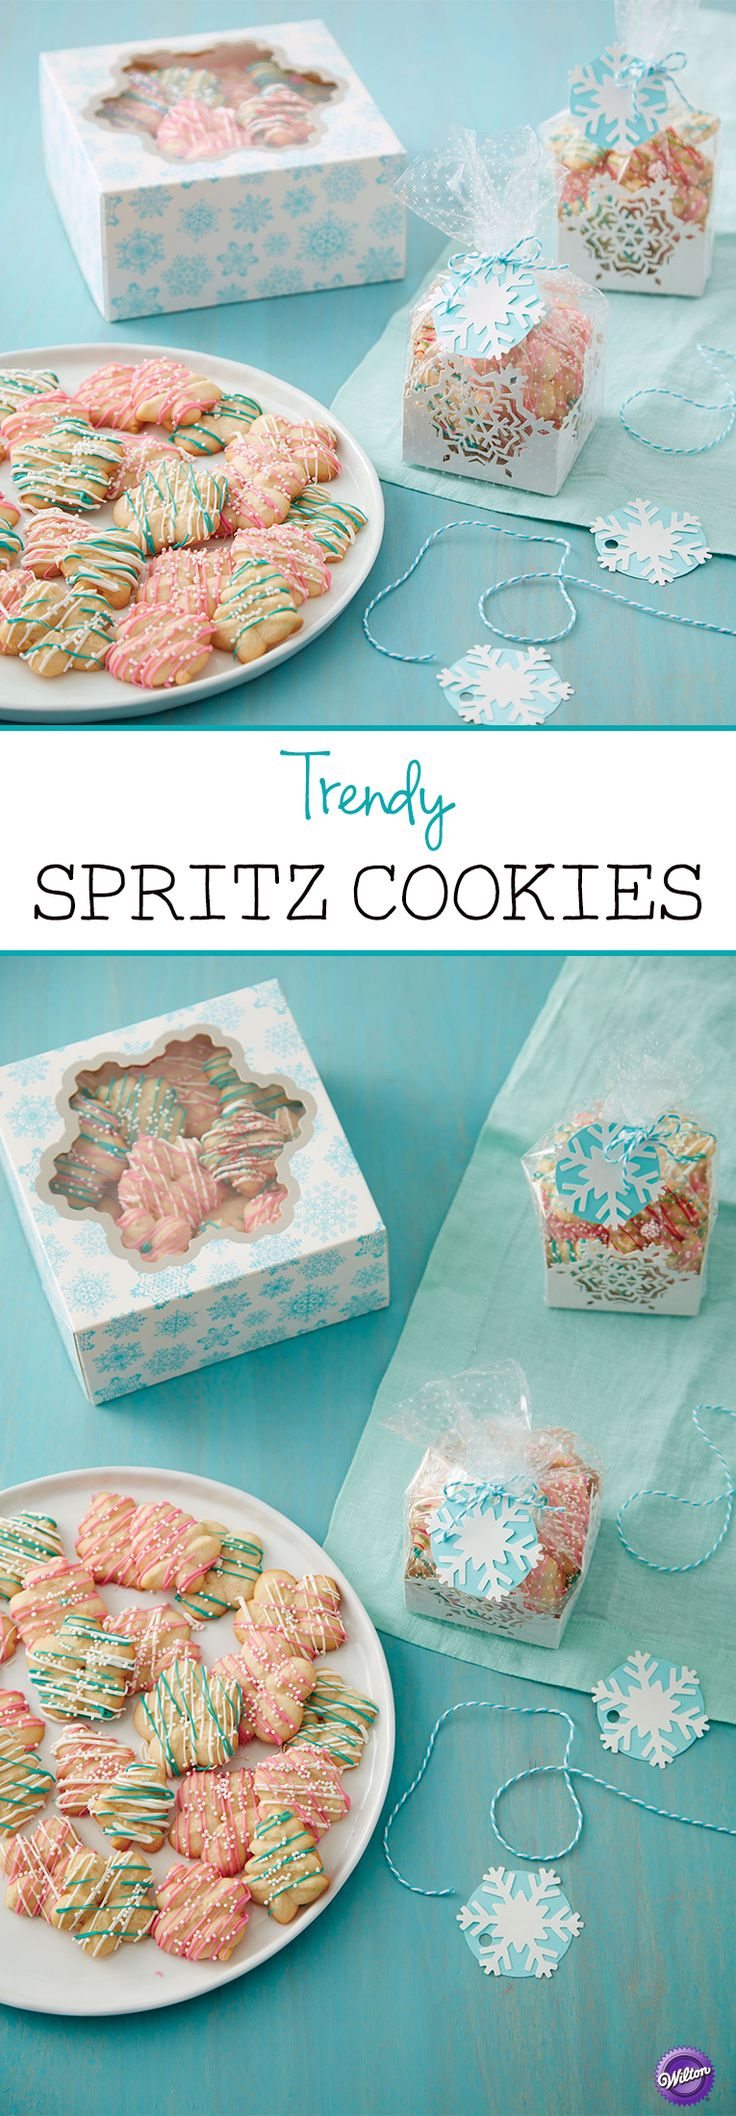 Trendy Spritz Cookies - The classic spritz cookies get a trendy makeover! These spritz cookies include the flavors of warm cinnamon, vanilla custard, and salted caramel. Make them not just for the holidays! This recipe makes about 10 dozen spritz cookies.